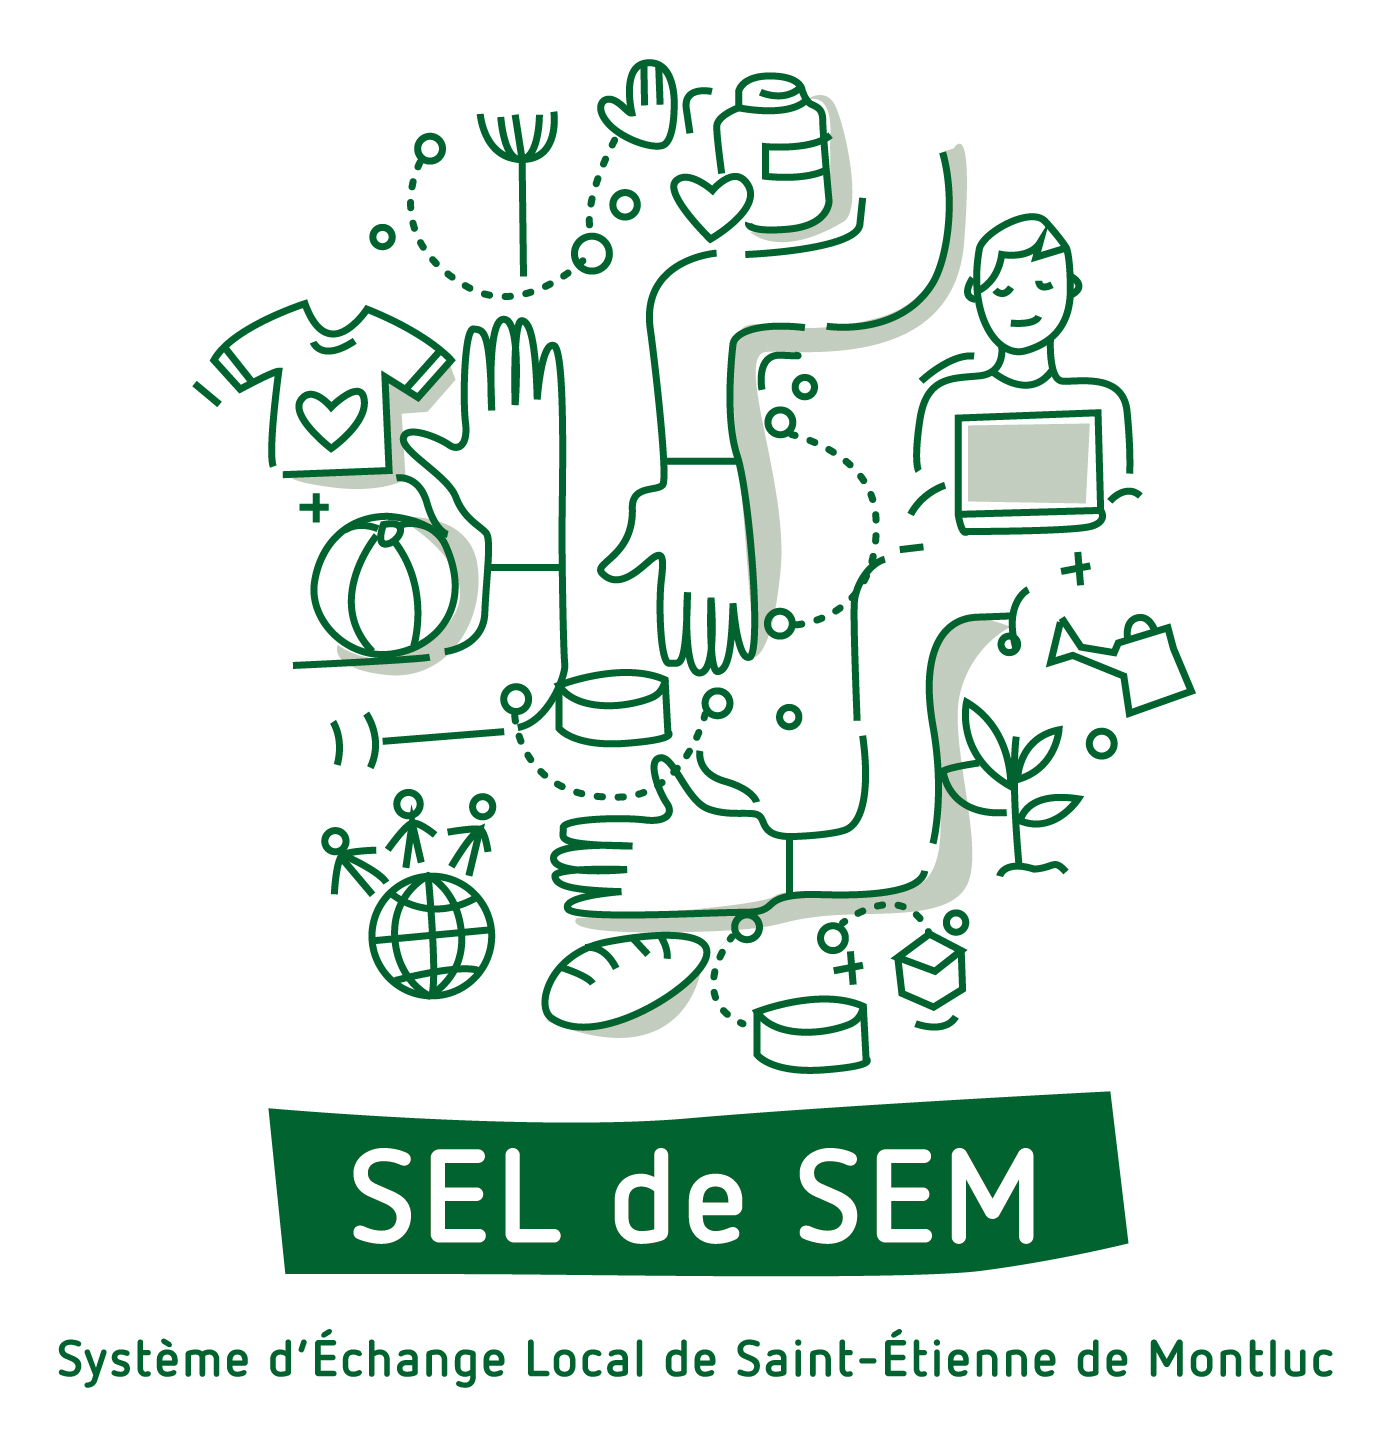 seldesem.communityforge.net